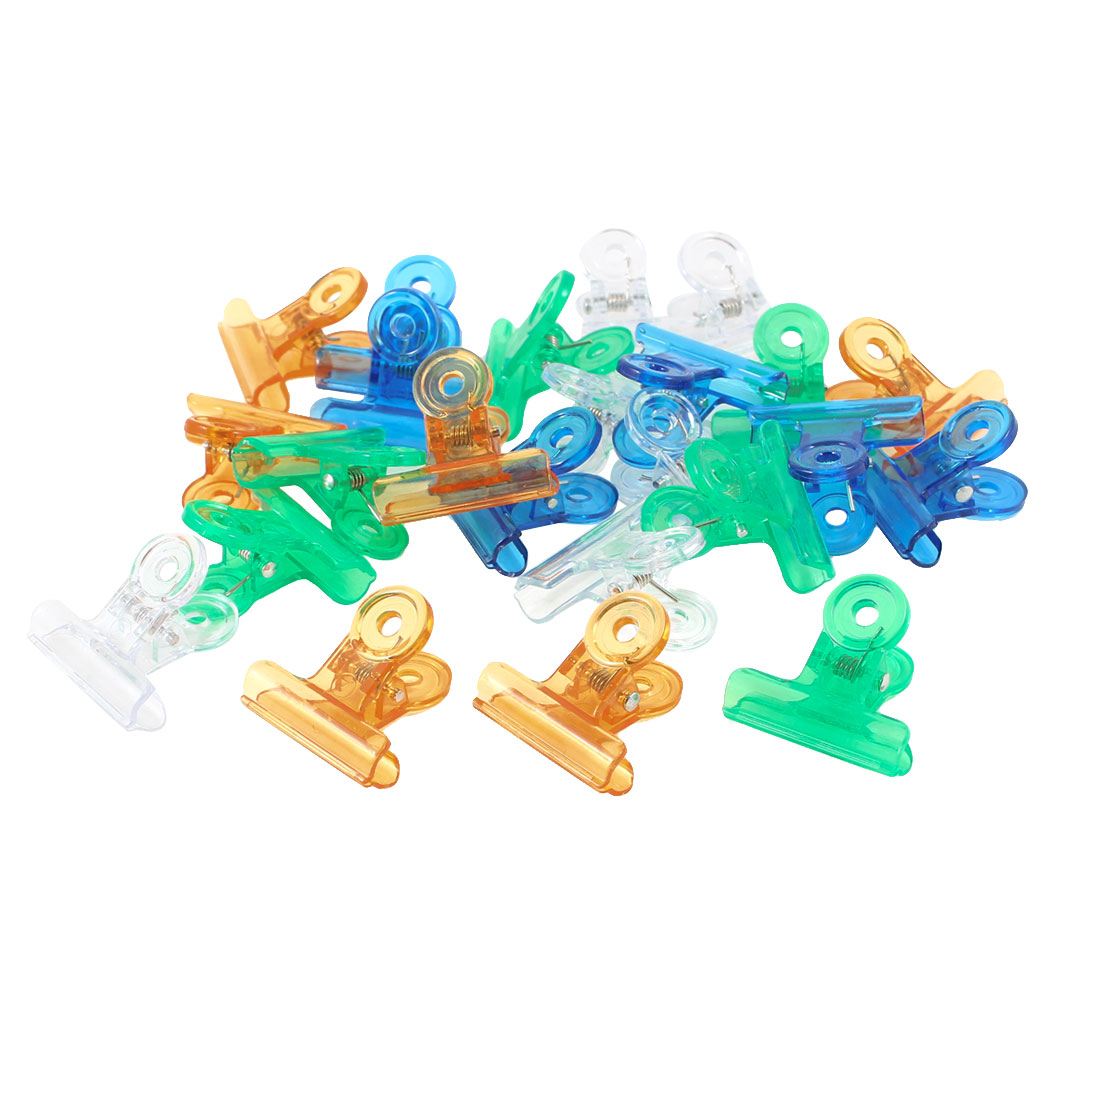 24 Pcs Plastic Office Stationery Binder Clips Colorful Color